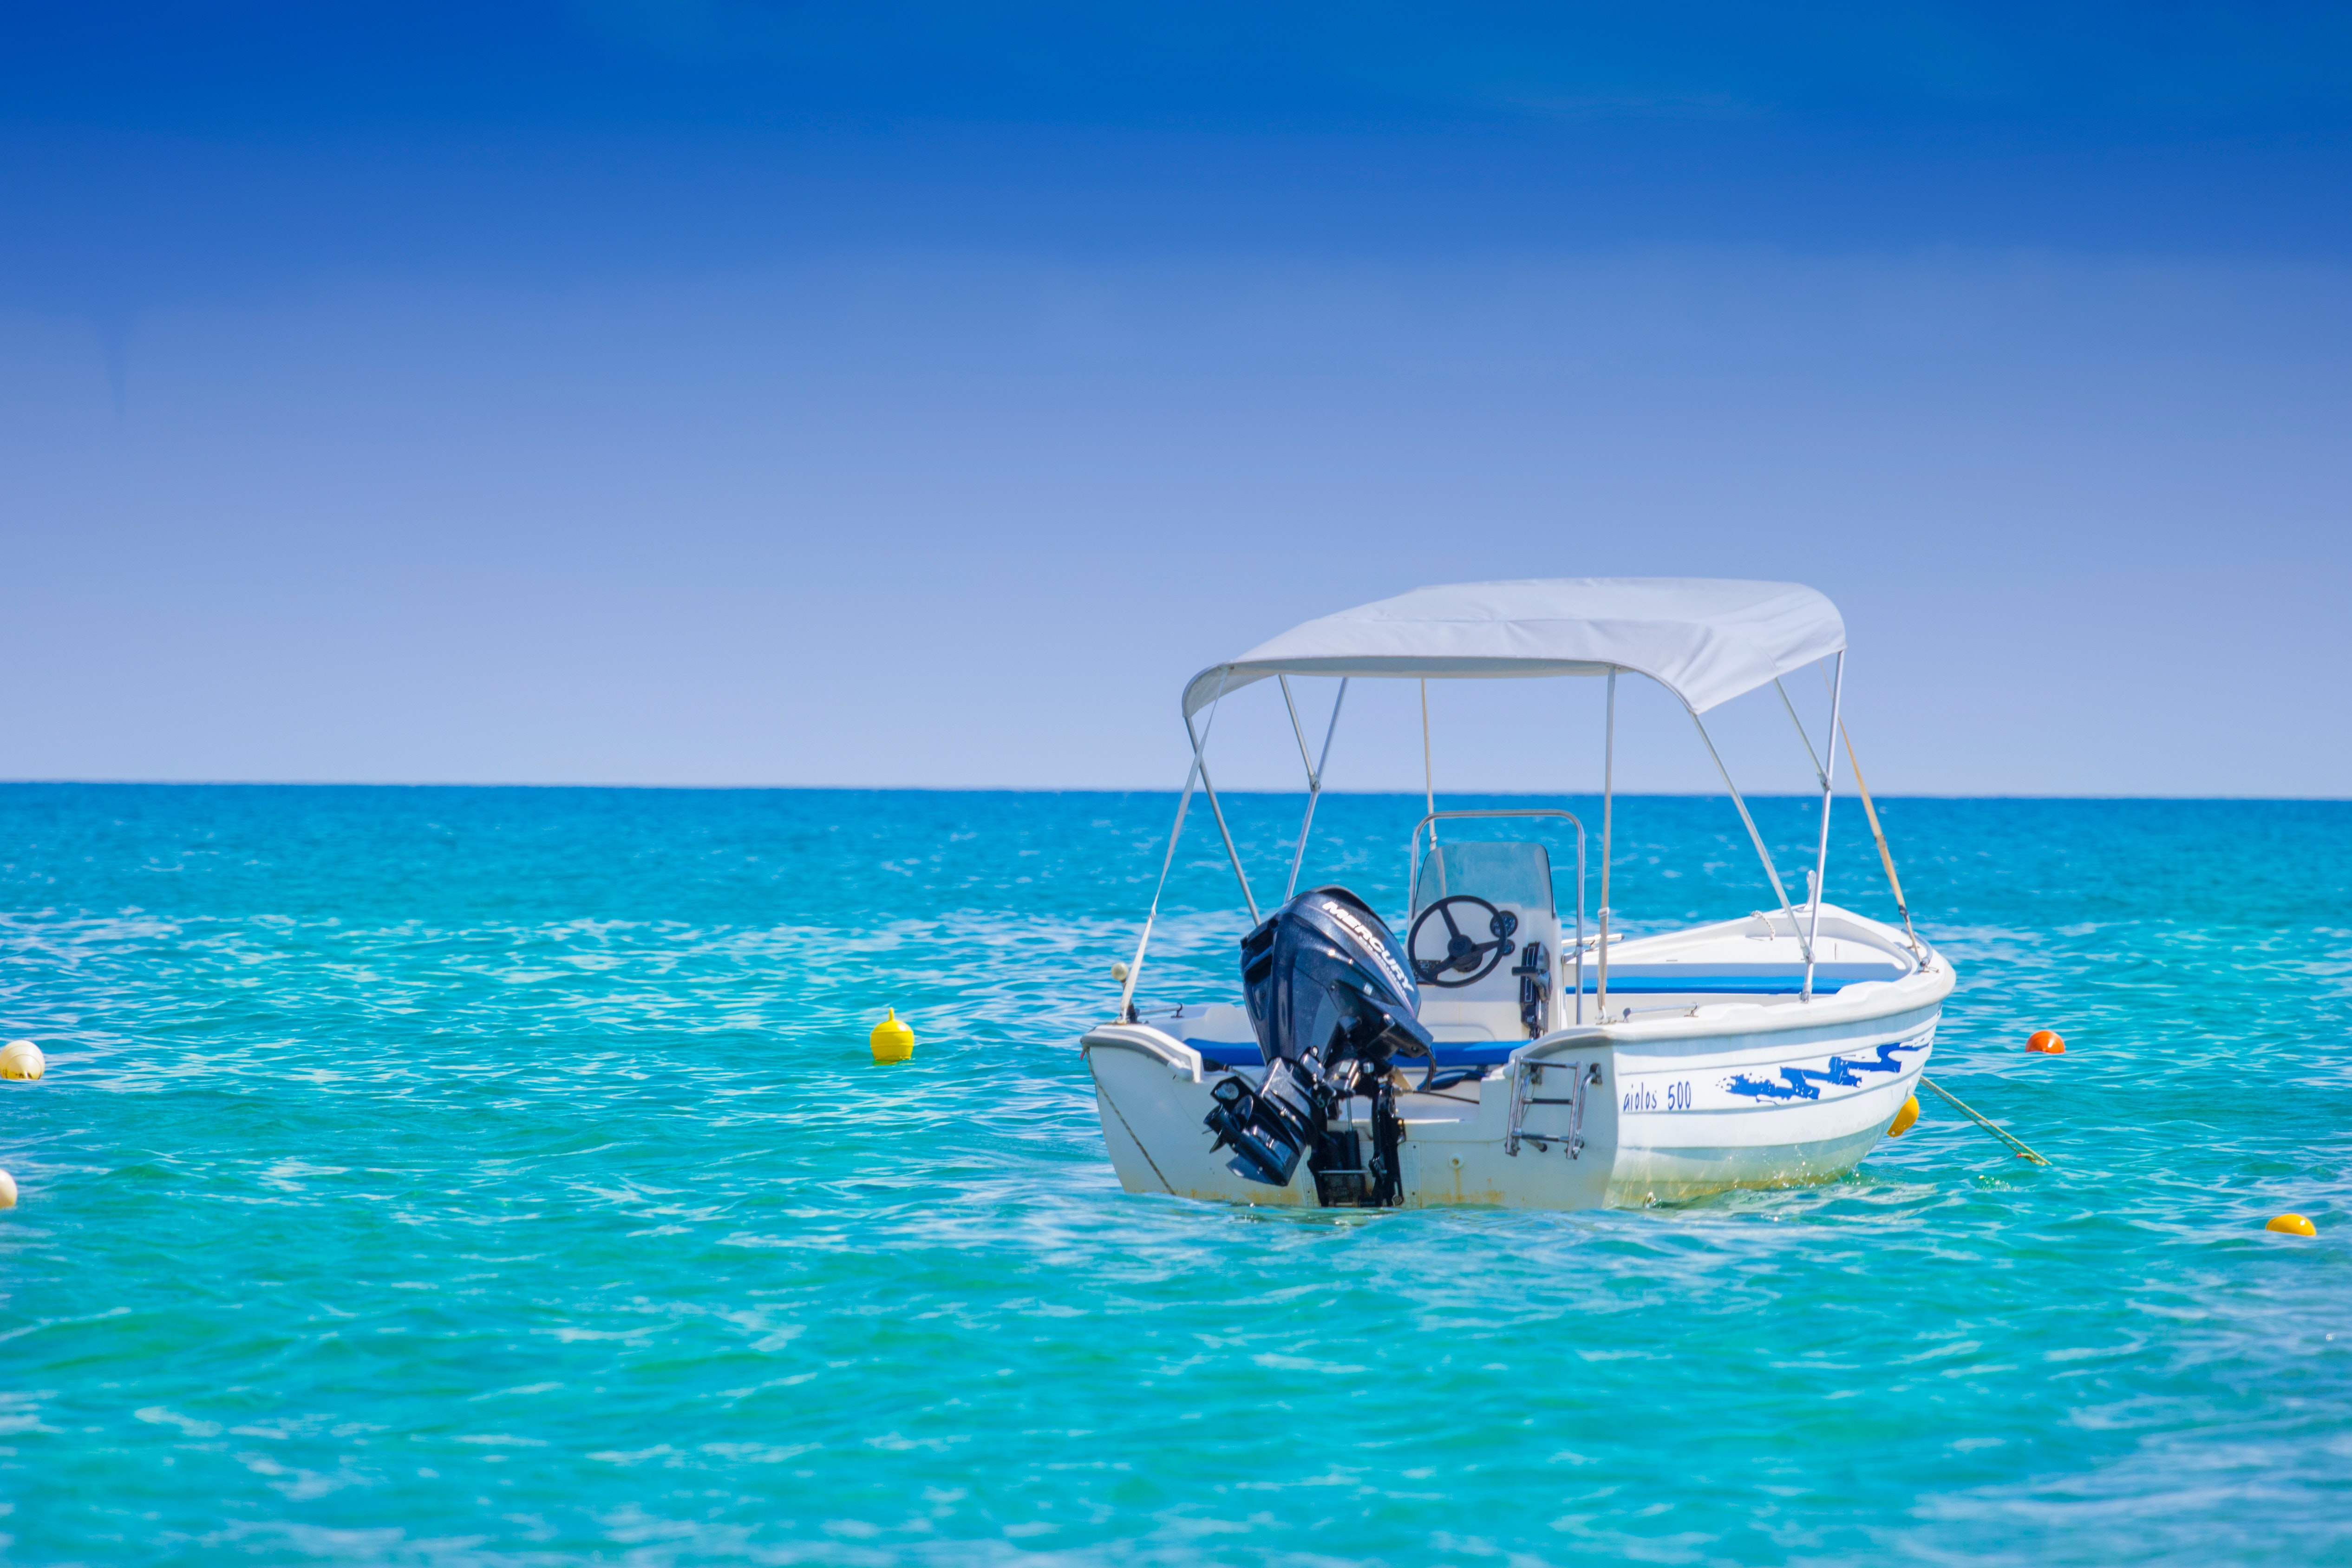 White Bow Rider Parked on the Body of Water, Beach, Sea, Water, Vacation, HQ Photo